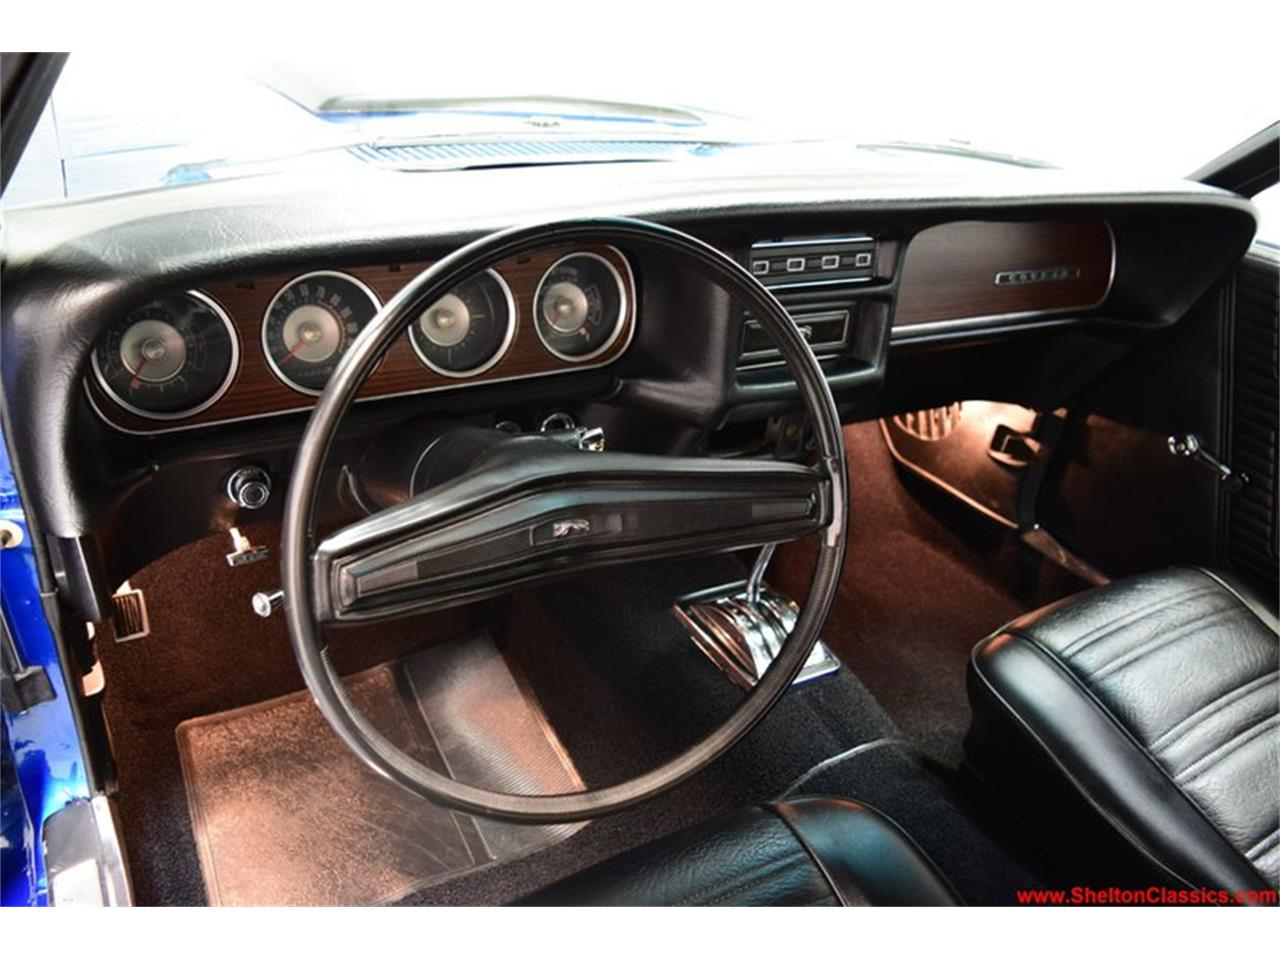 Large Picture of 1970 Mercury Cougar located in Mooresville North Carolina - $19,995.00 - Q529